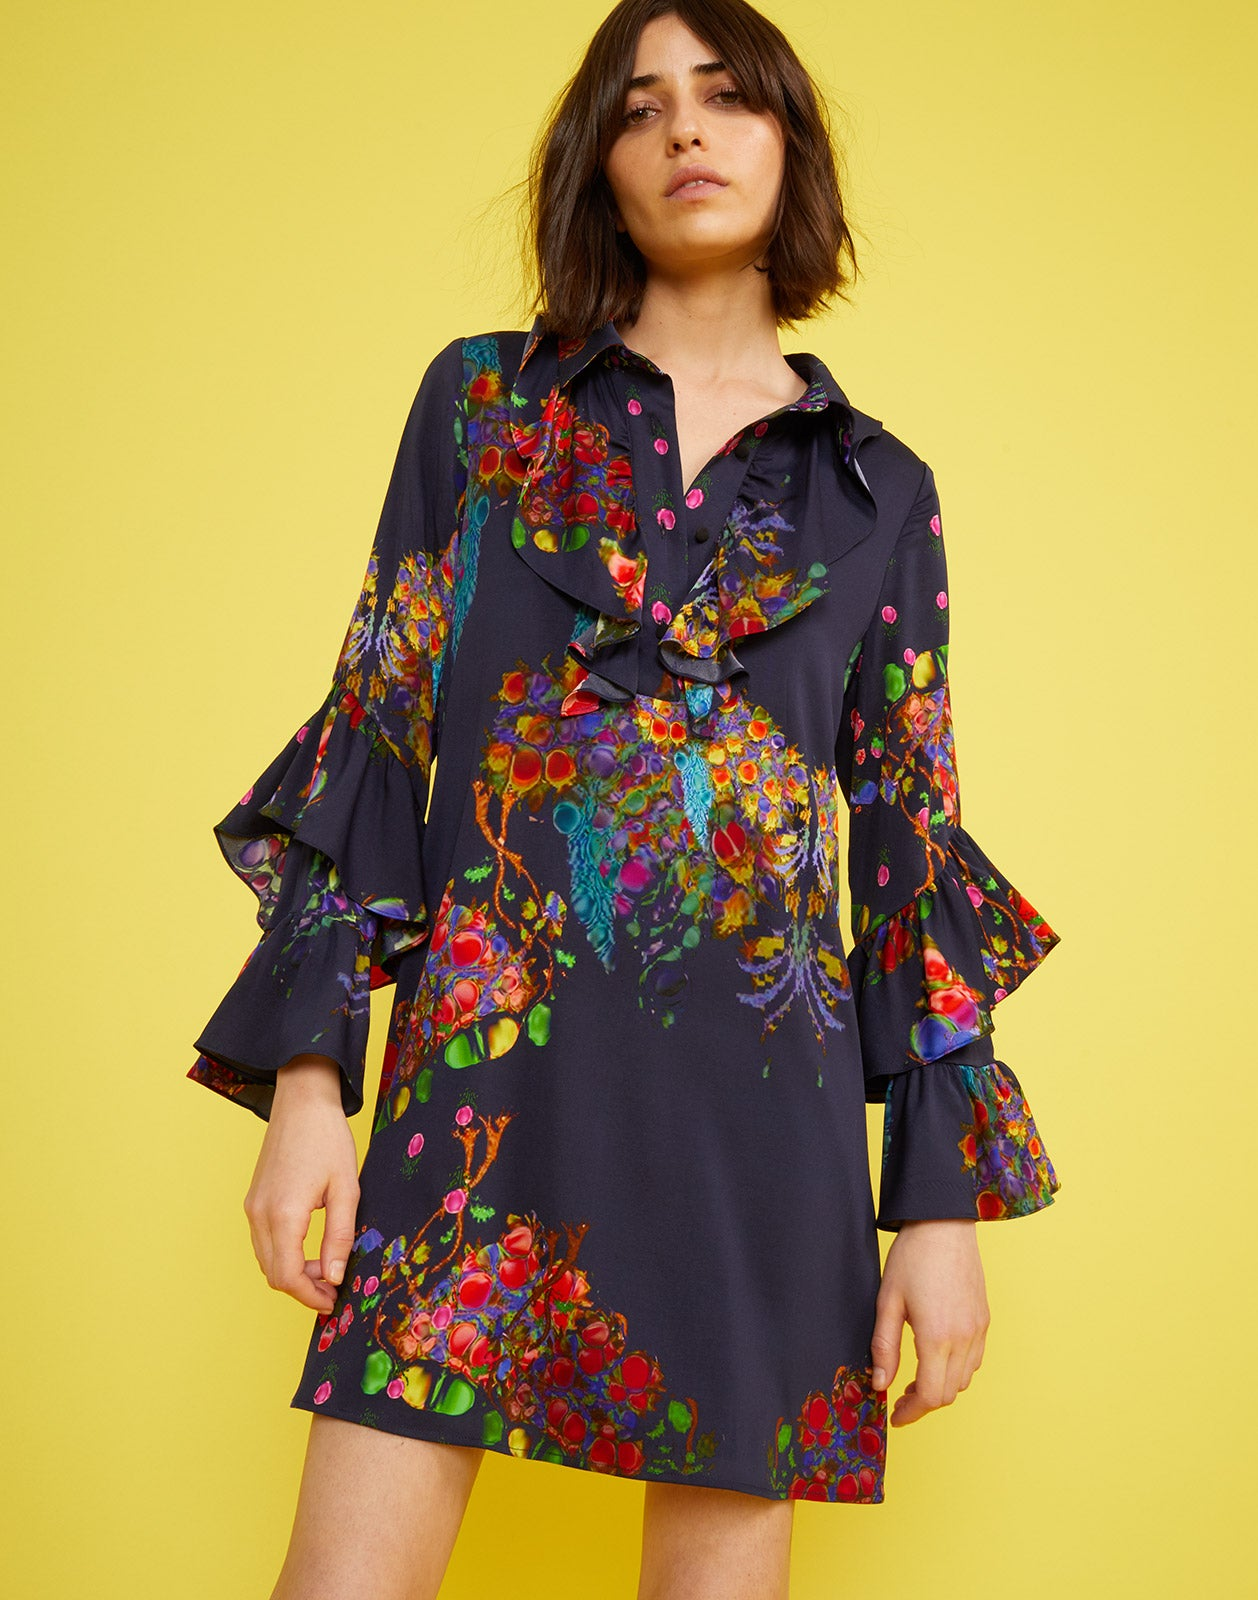 Close front view of the Roseland Mini Shirtdress